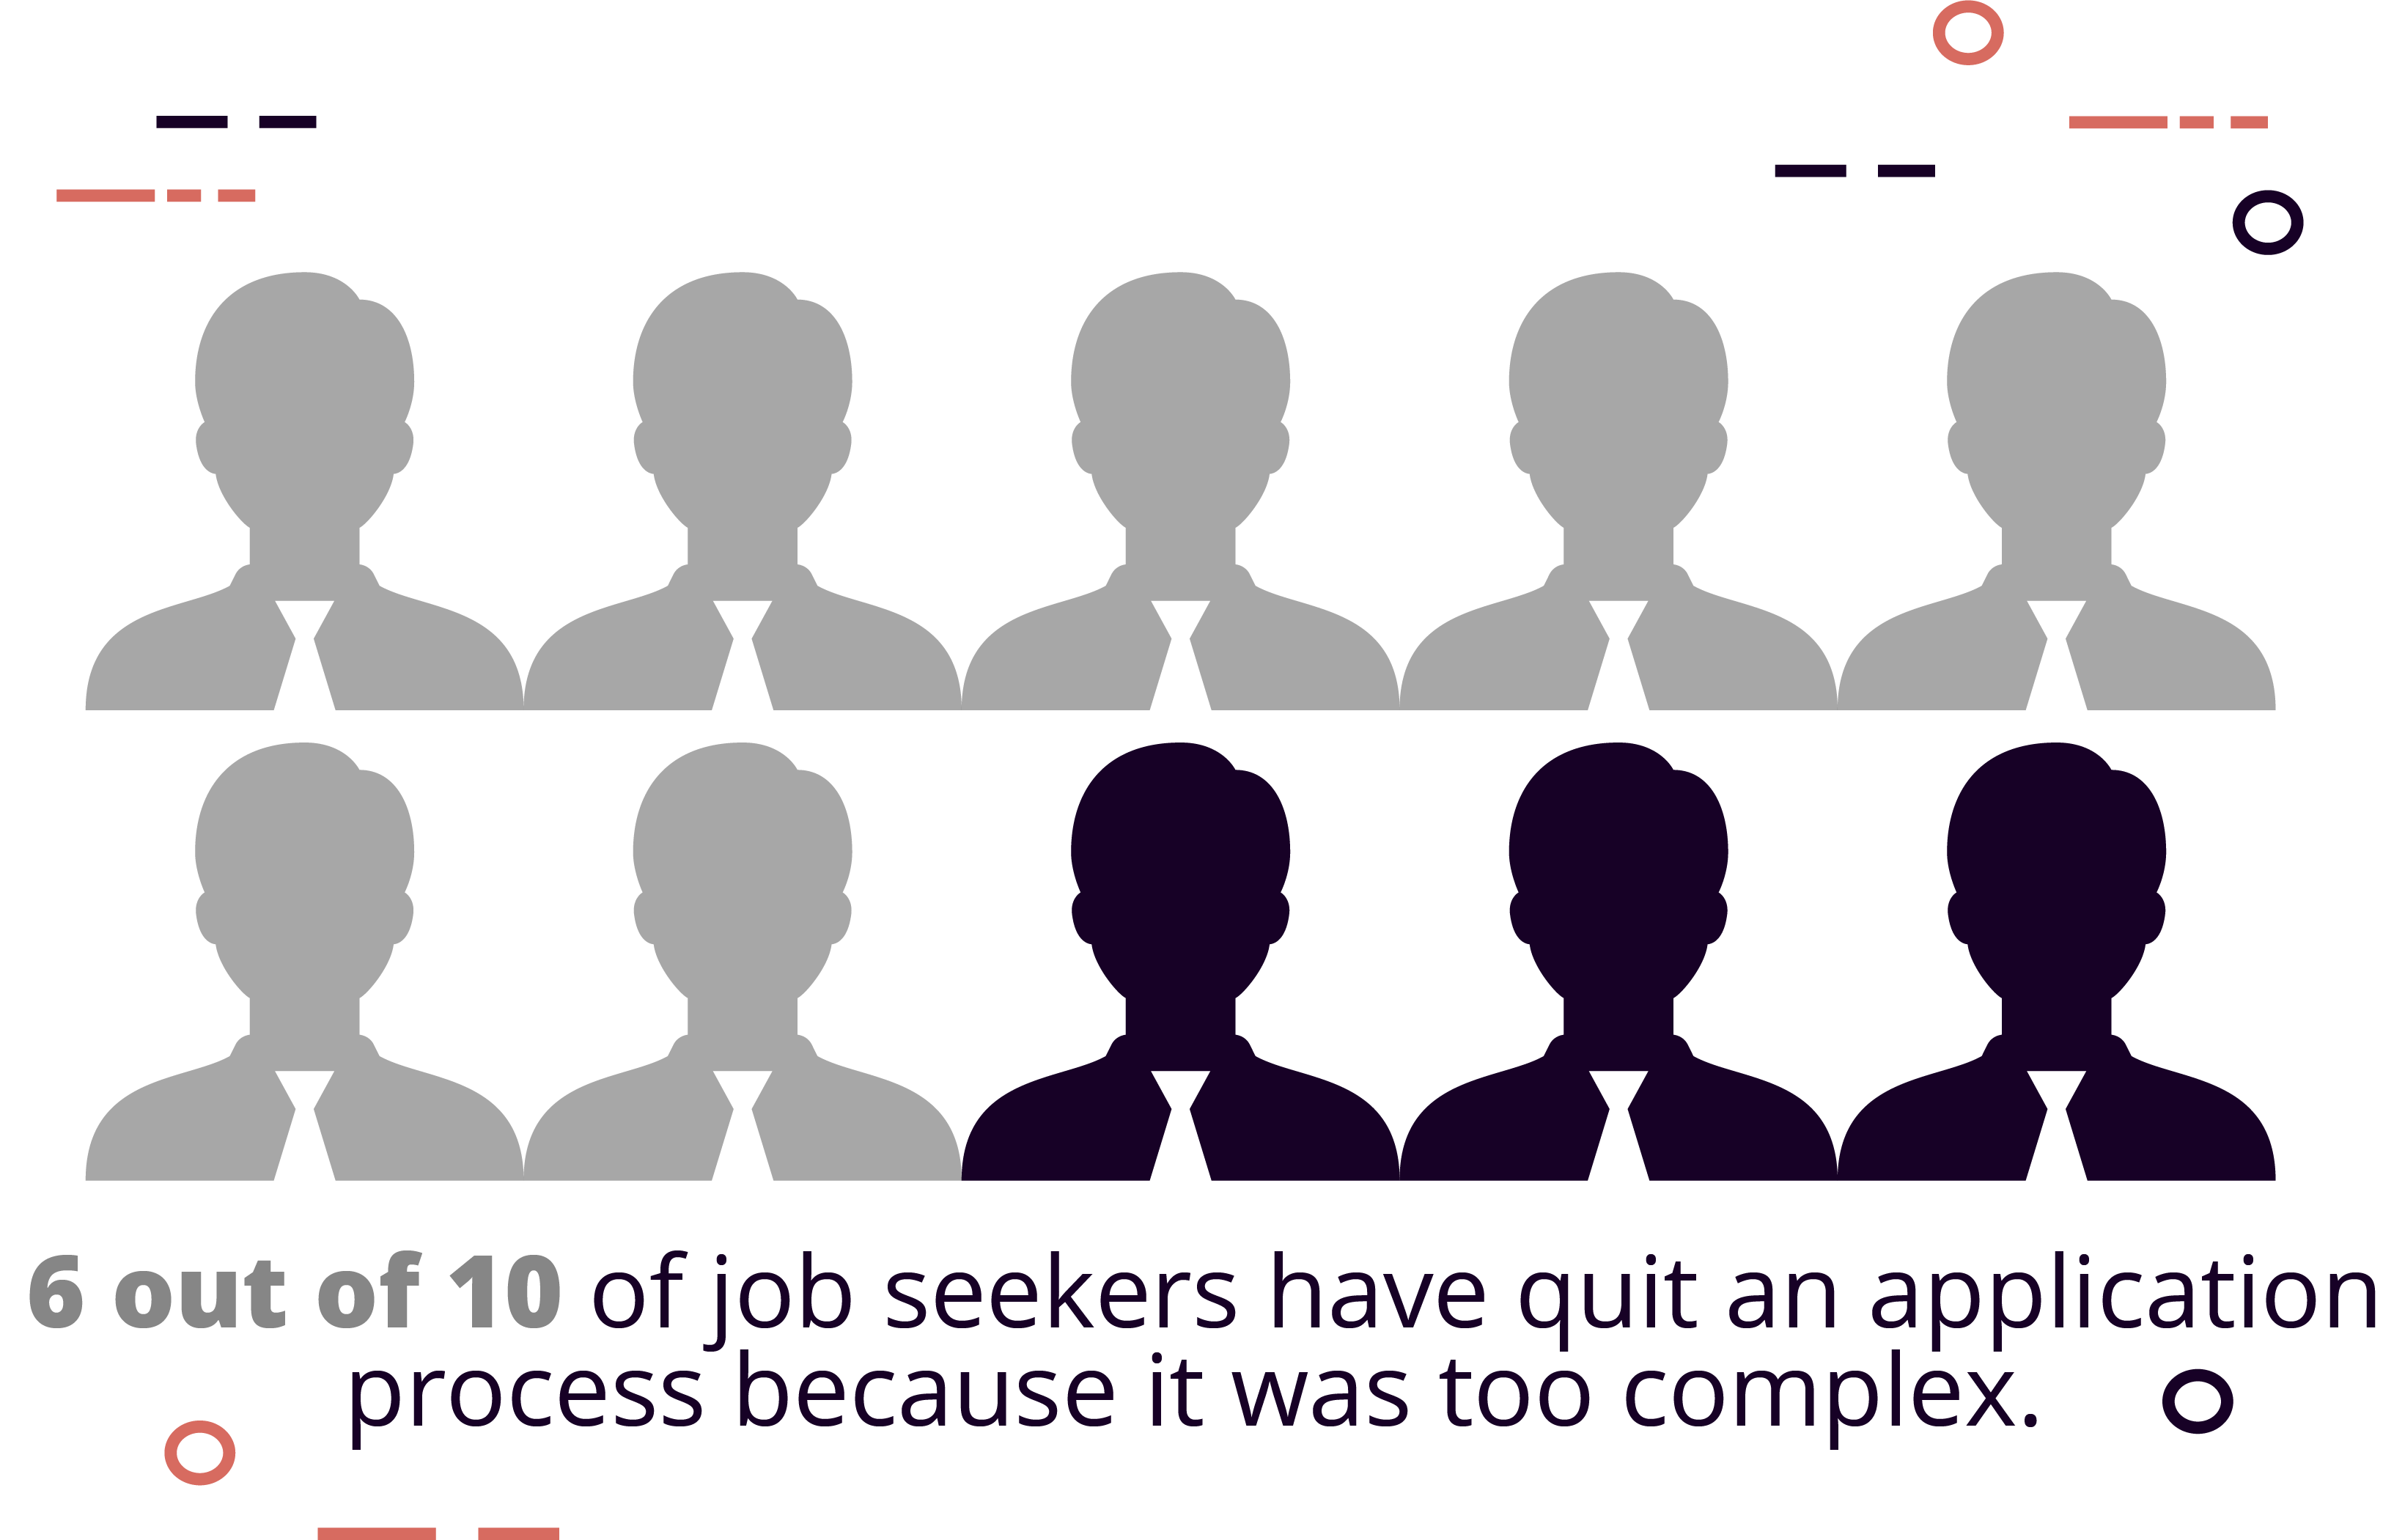 60% of job seekers have quit an application because it is too complex